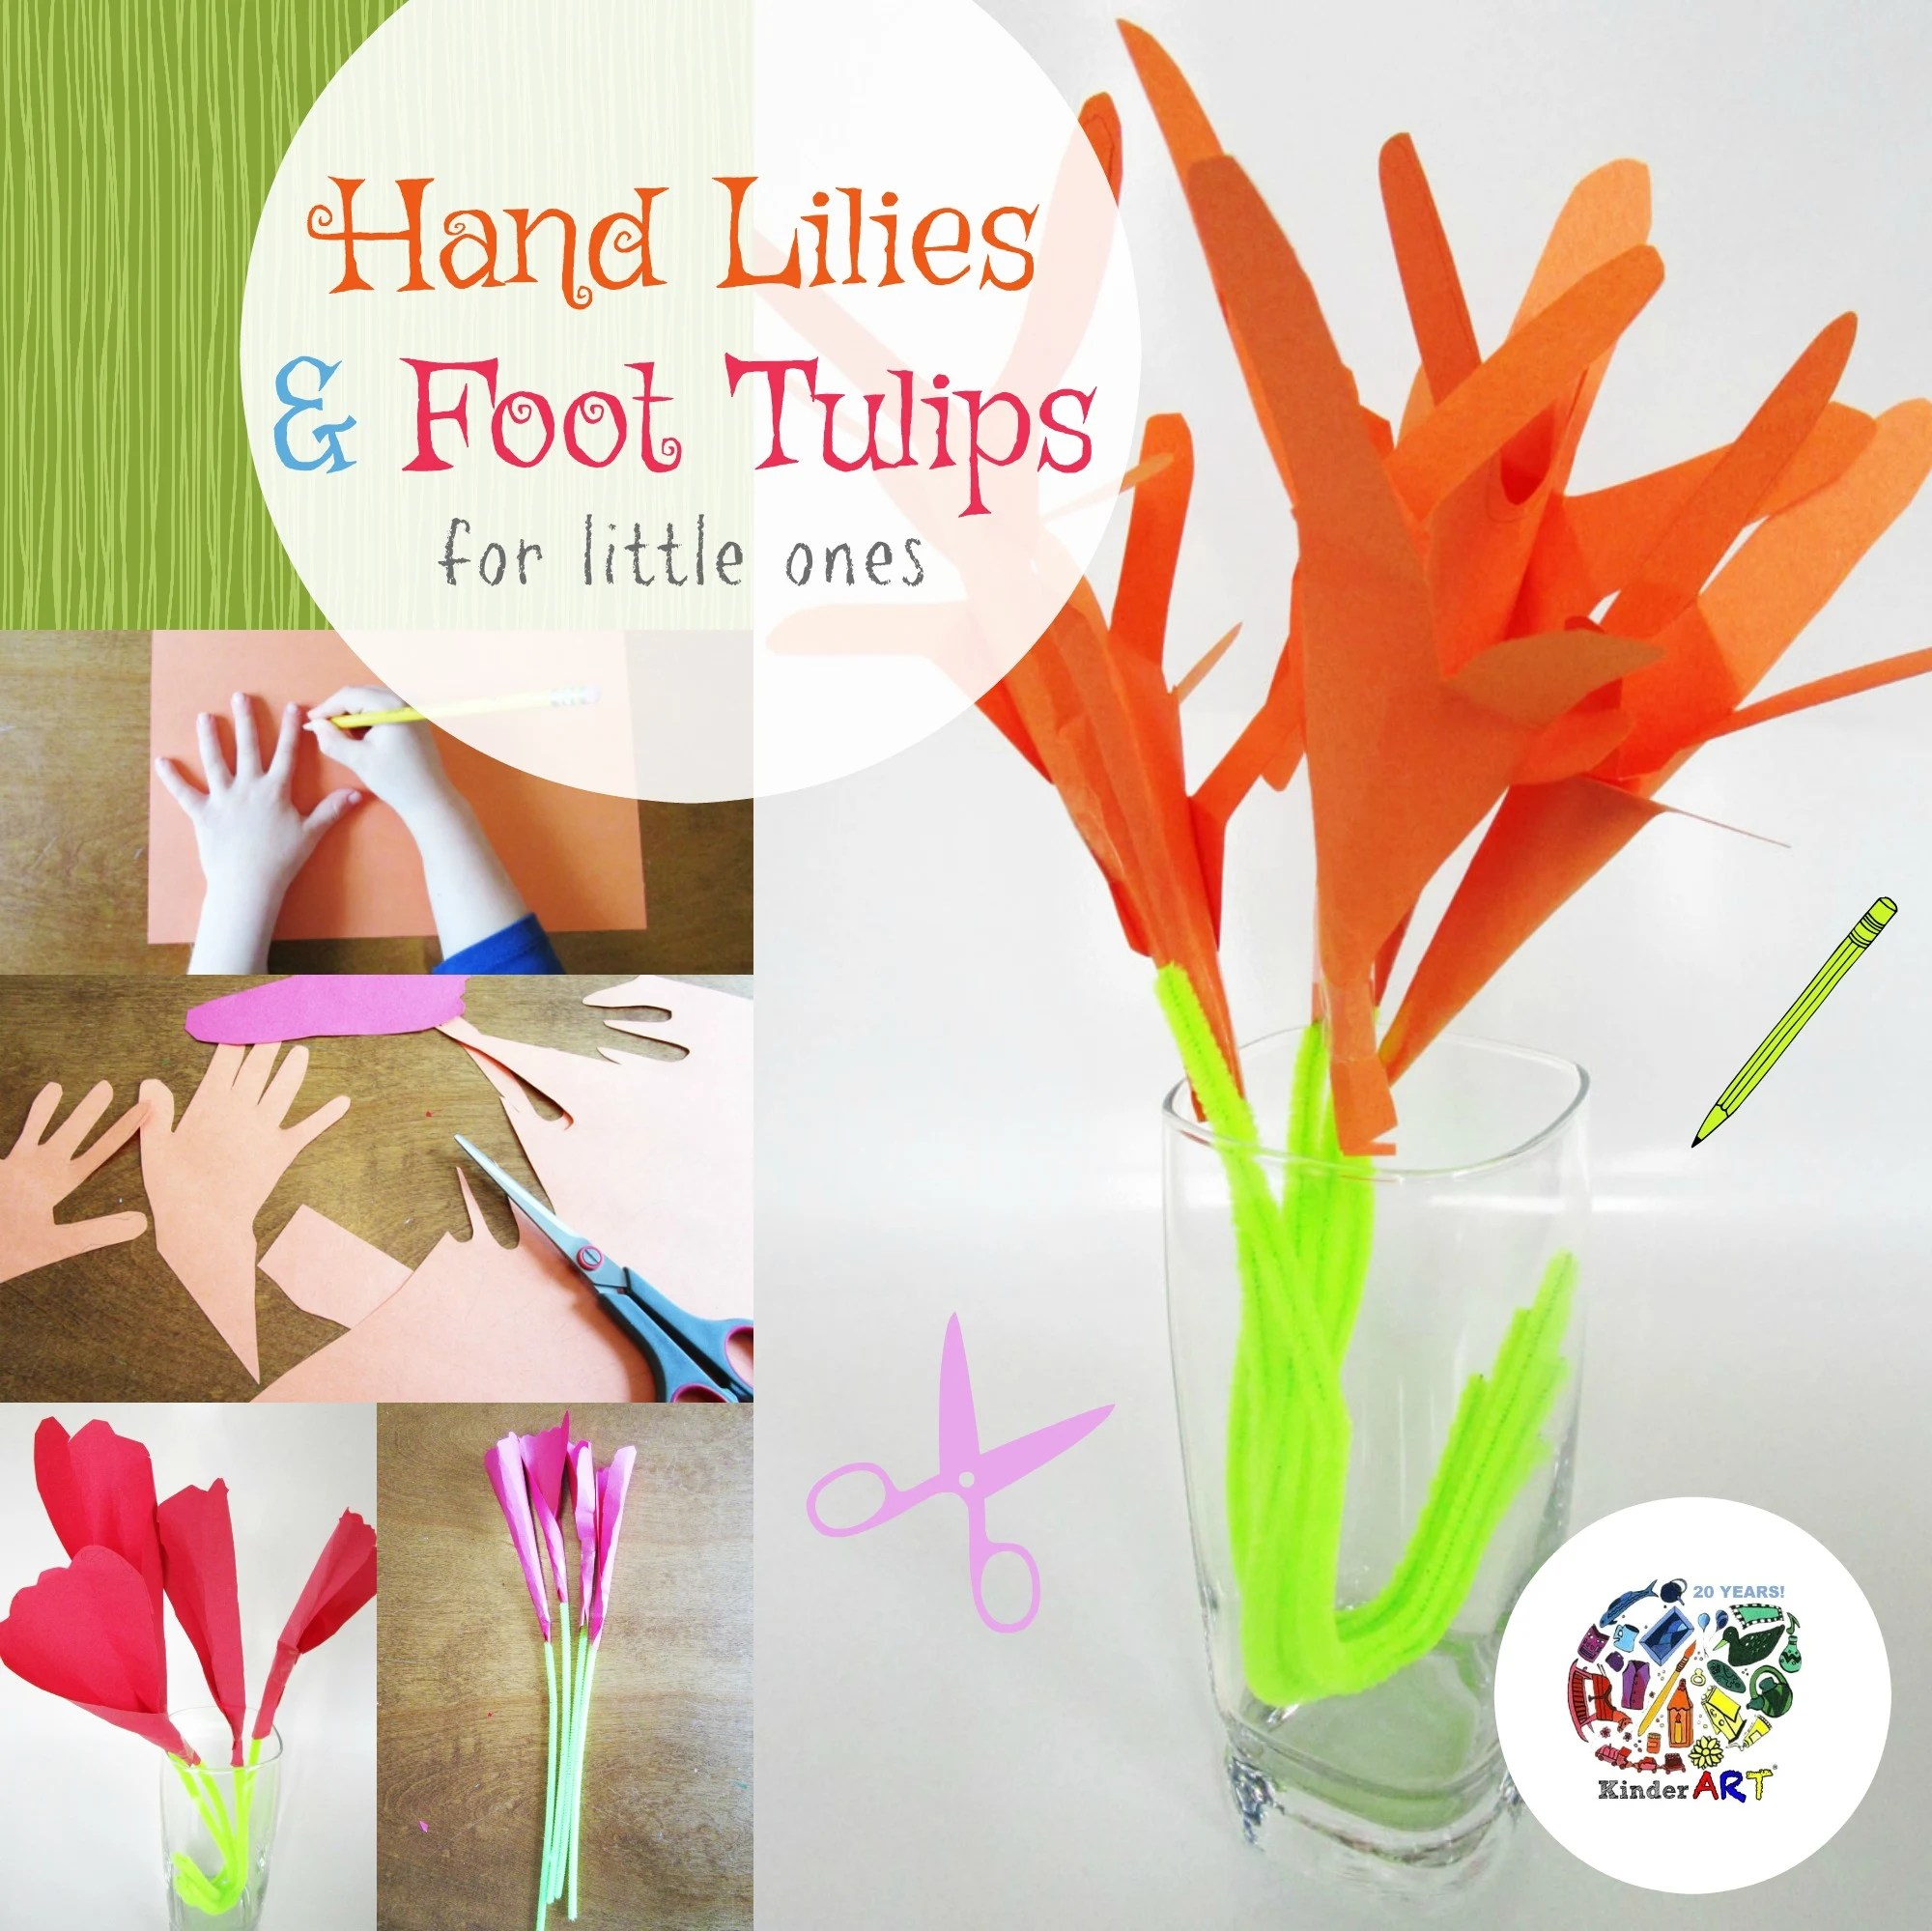 Kinder Origami Hand Lilies And Foot Tulips Activity For Children From